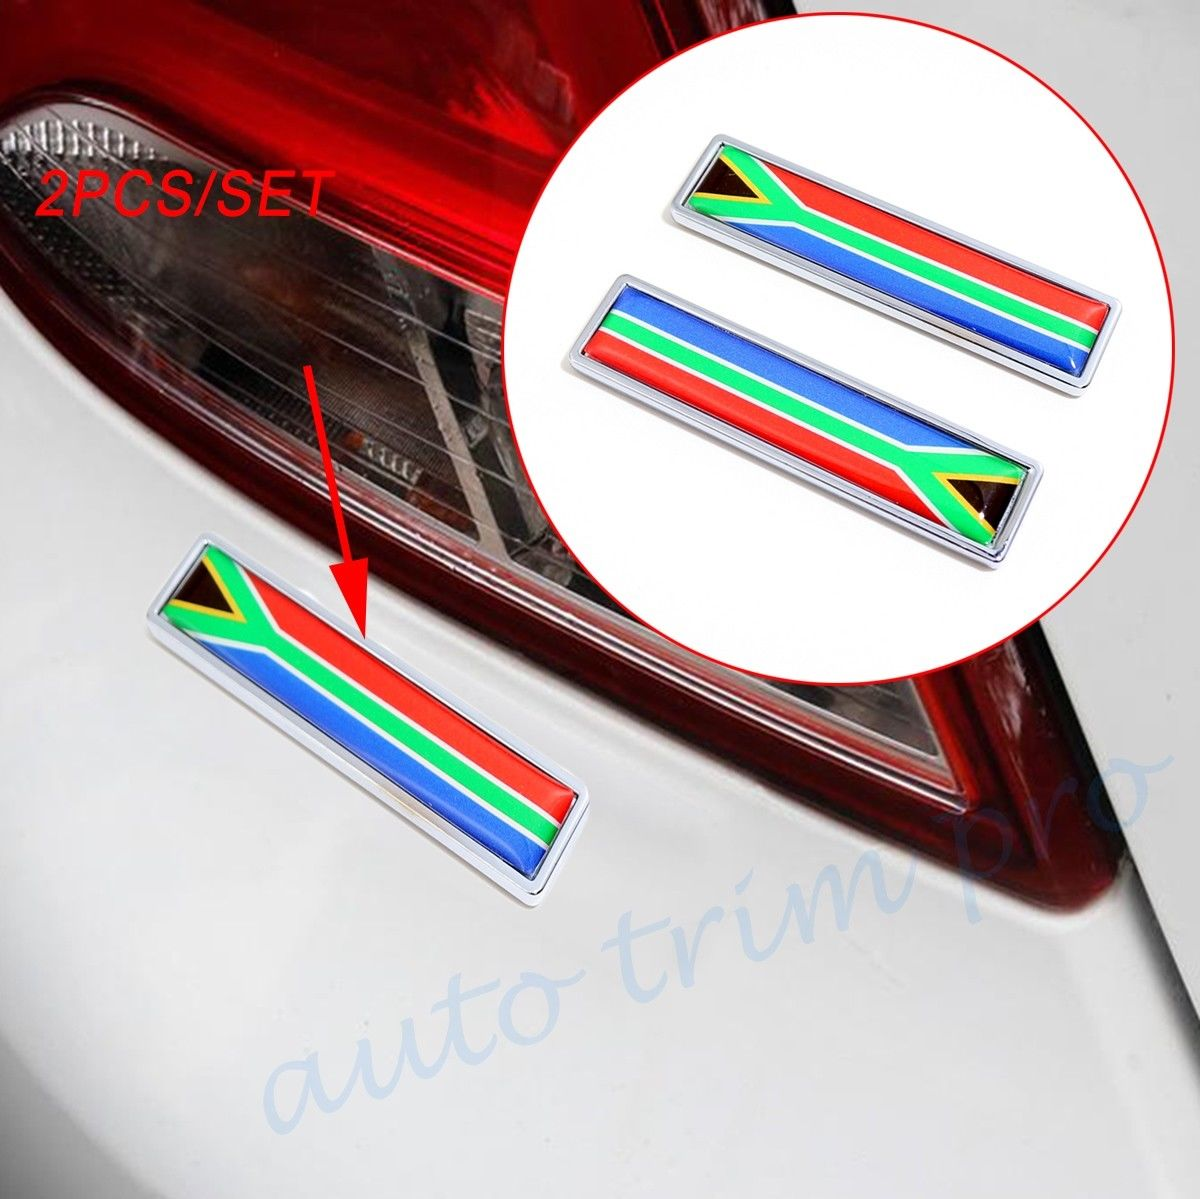 2pcs Chrome Car Motor Exterior Parts 3D Sticker Decal South Africa Nation Flag Emblem Badge Symbol Accessories